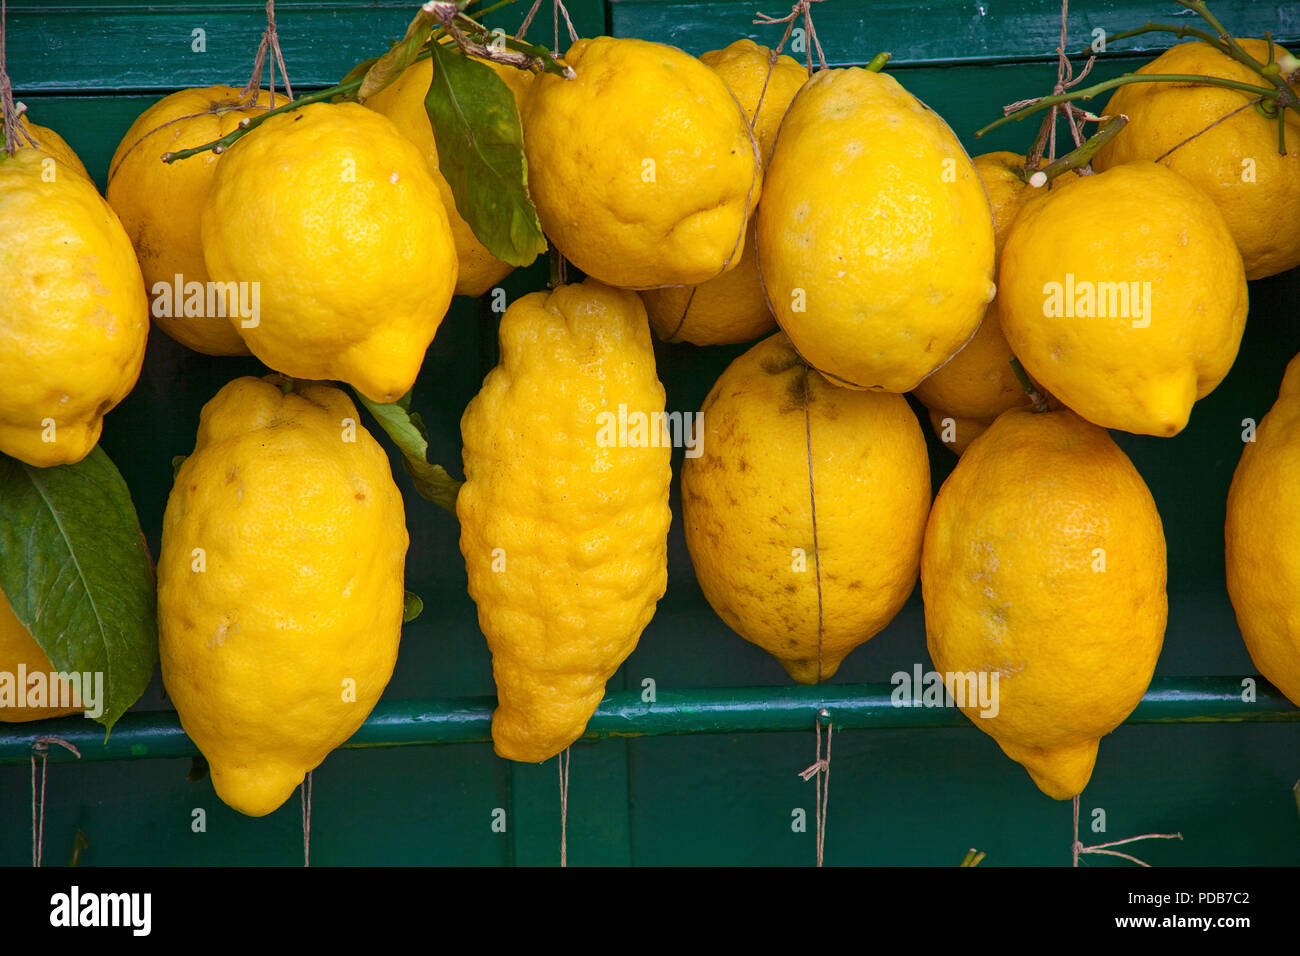 Lemons a speciality of the region, Sirmione, Lake Garda, Lombardy, Italy Stock Photo